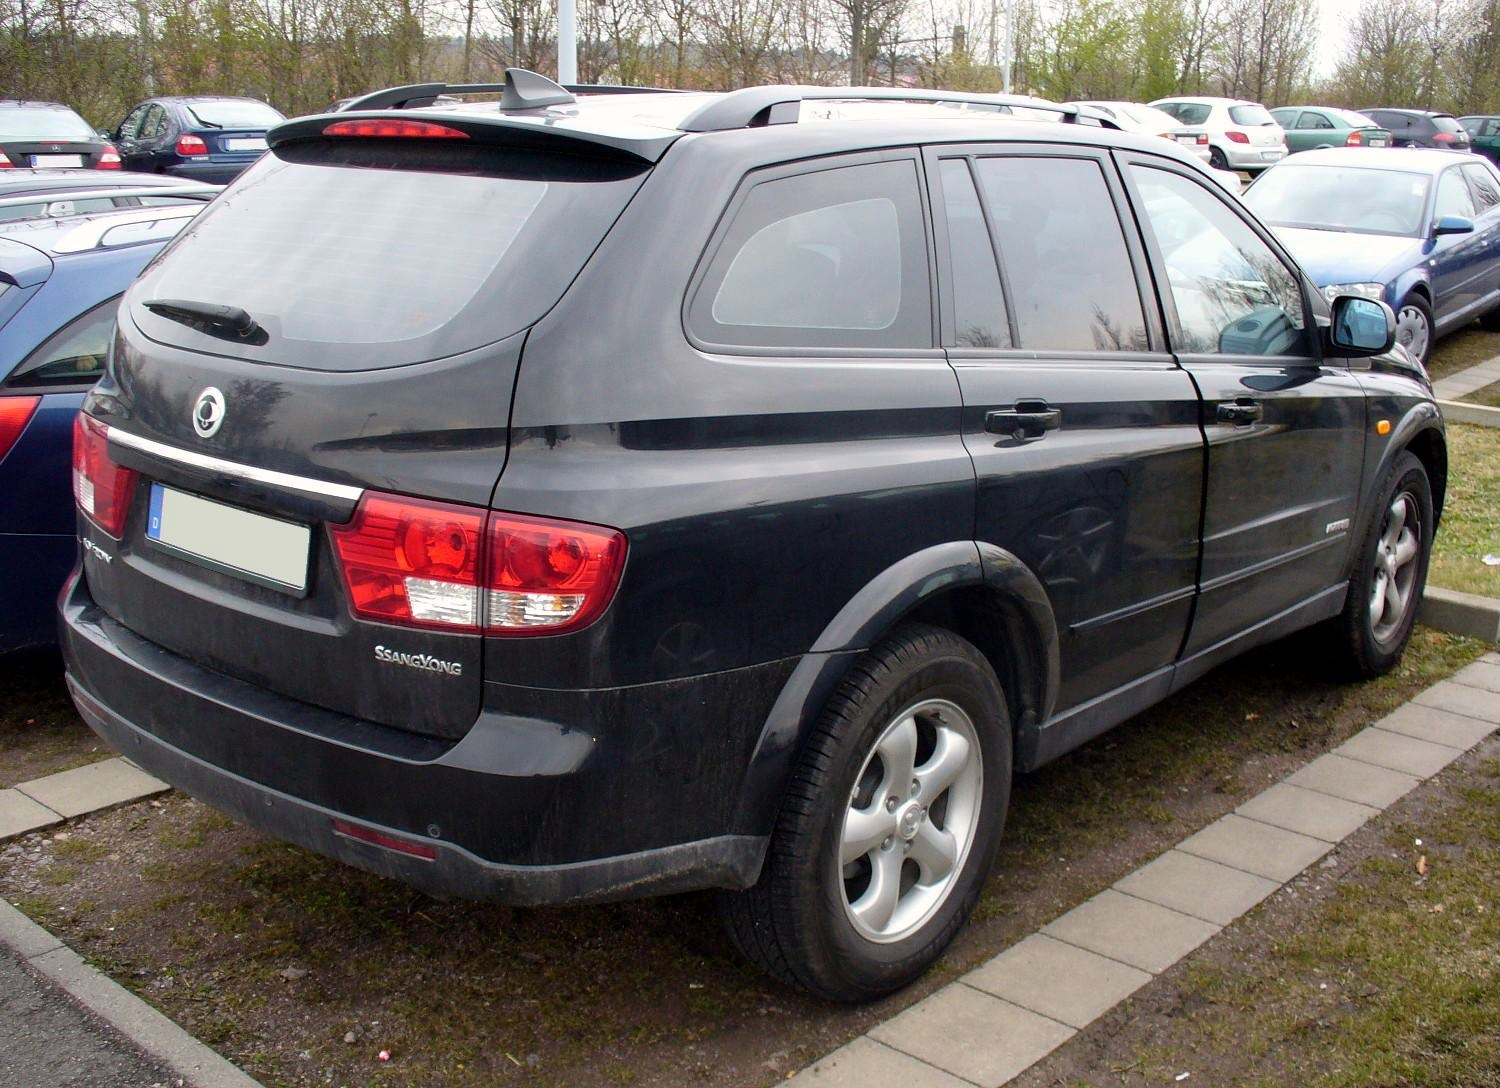 ssangyong kyron ii 2009 images #15